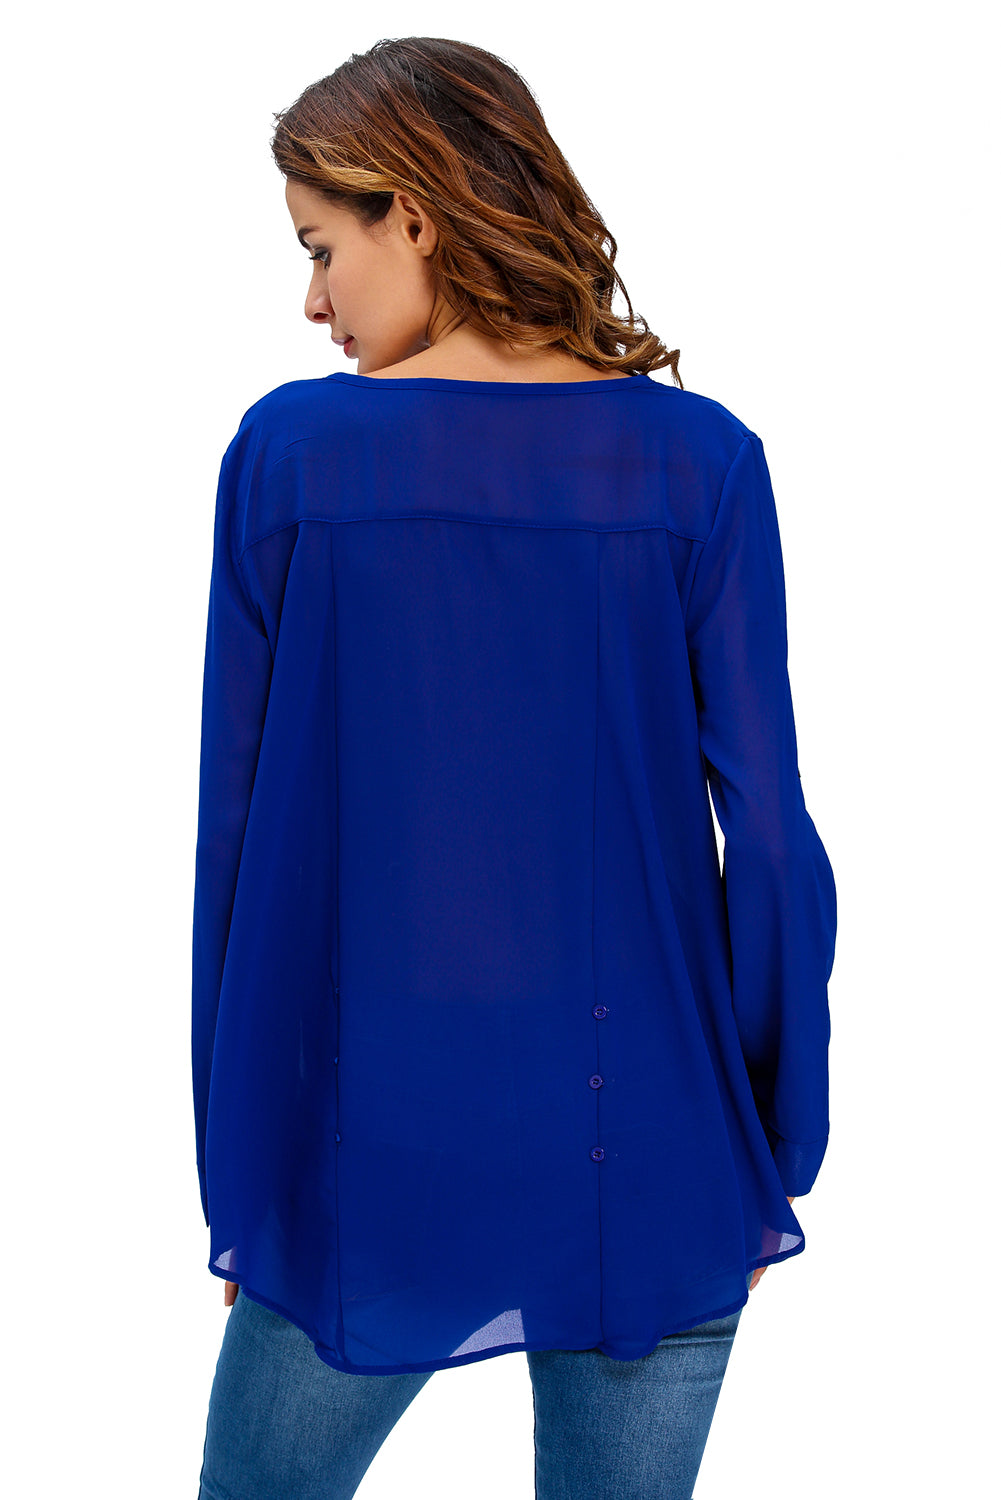 Royal Blue V-Neck Button Detail Dip Back Blouse Top